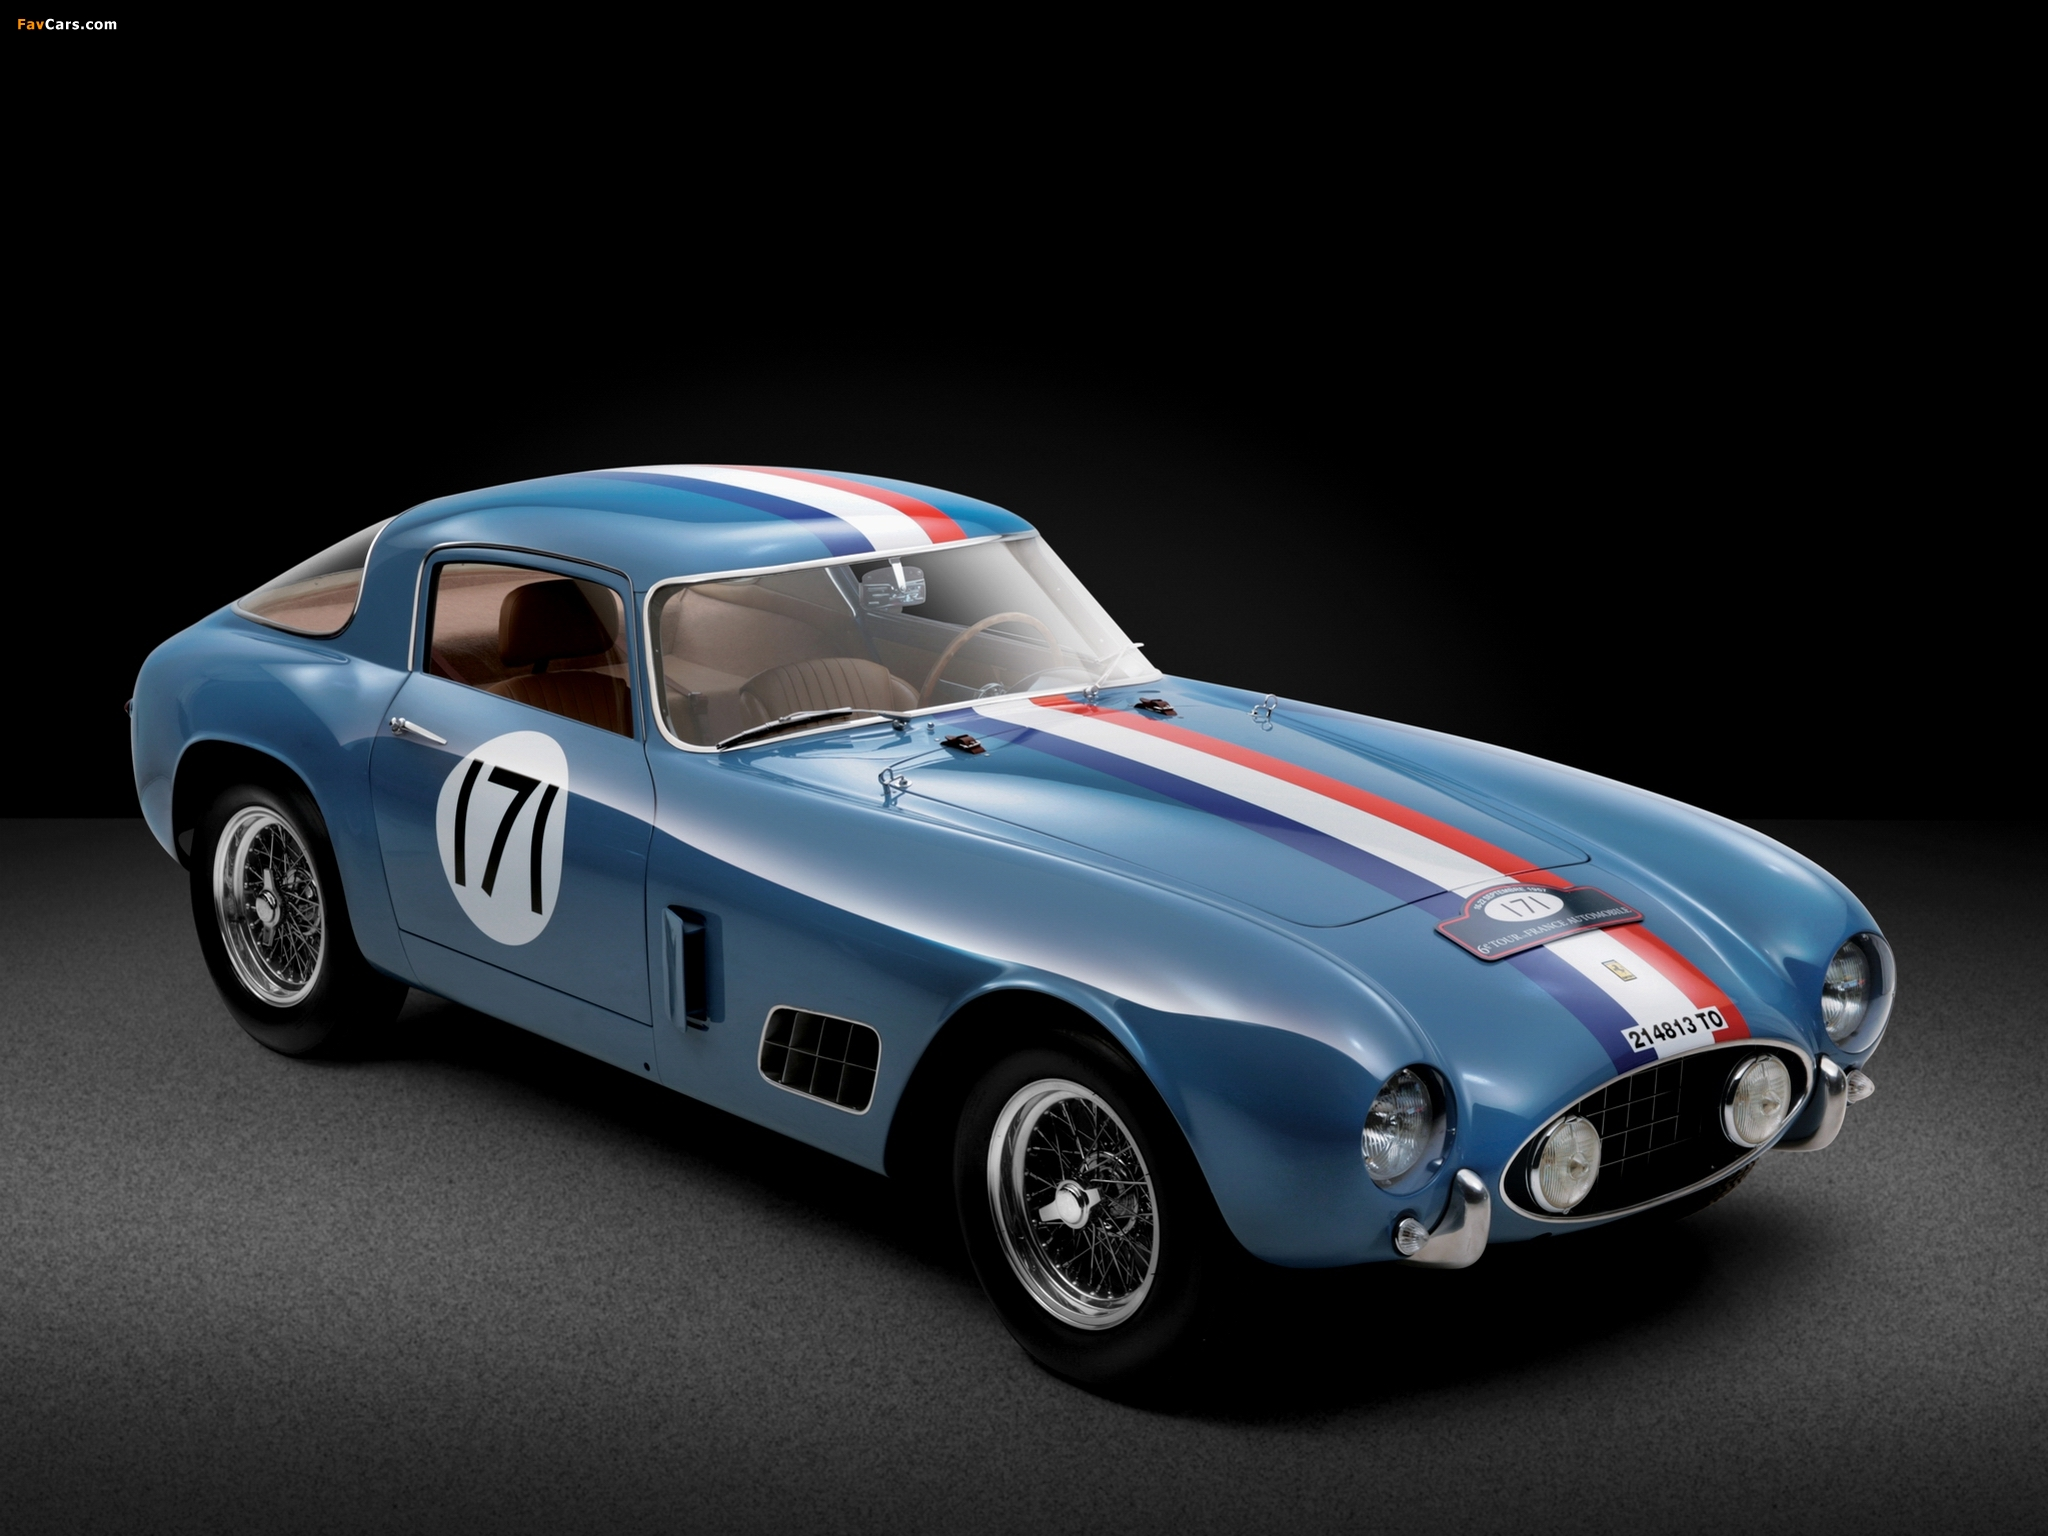 ferrari 250 desktop wallpaper - photo #35